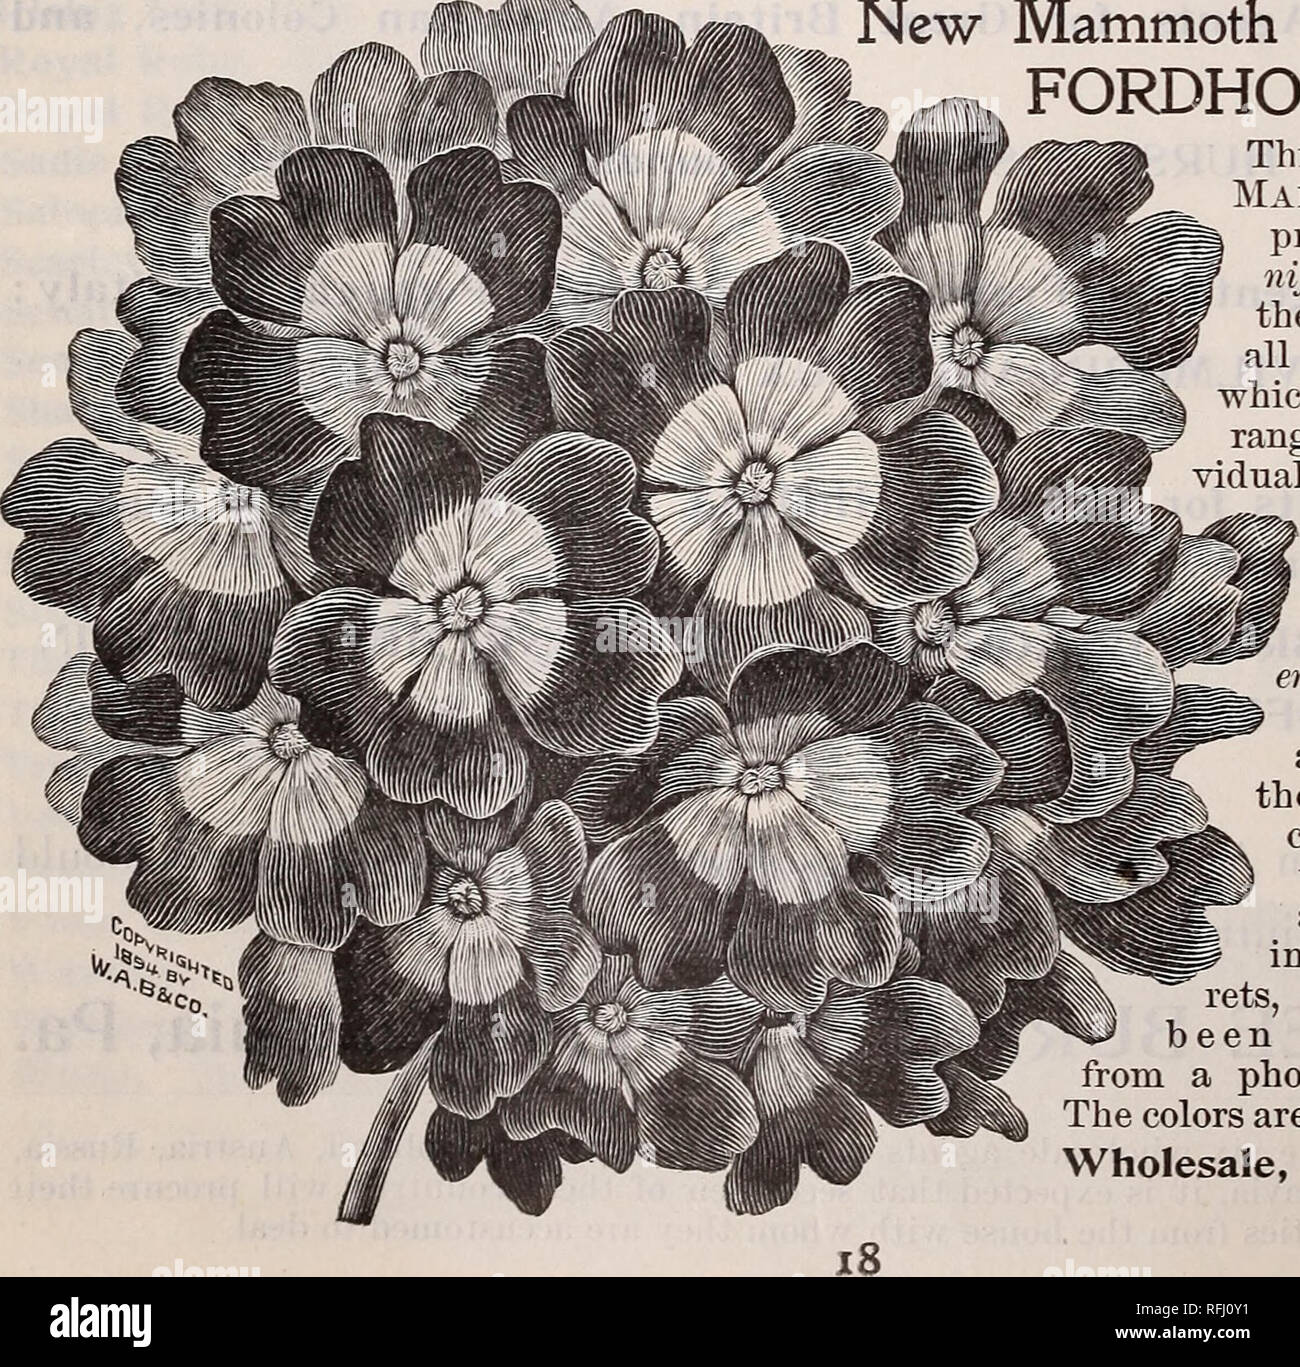 """. Burpee's sweet peas for 1900 : preliminary wholesale prices also of vegetable seeds. Nurseries (Horticulture) Pennsylvania Philadelphia Catalogs; Plants, Ornamental Catalogs; Flowers Seeds Catalogs; Vegetables Seeds Catalogs. HHP BURPEE'S """" SUNLIGHT """" NASTURTIUM,—Niltitral-Size flower. """" MOONLIGHT"""" NASTURTIUM. 2S*£S**5gg?£IoL™k£*$SI exquisite pale-straw color. It is as beautifully shaped as its brilliant companion, and has the same lovely crinkled effect in the petals. Wholesale, $1.25 per lb. Climbing Nasturtiums—HYBRIDS OF MADAME GUNTER. We have harvested, this season,  - Stock Image"""